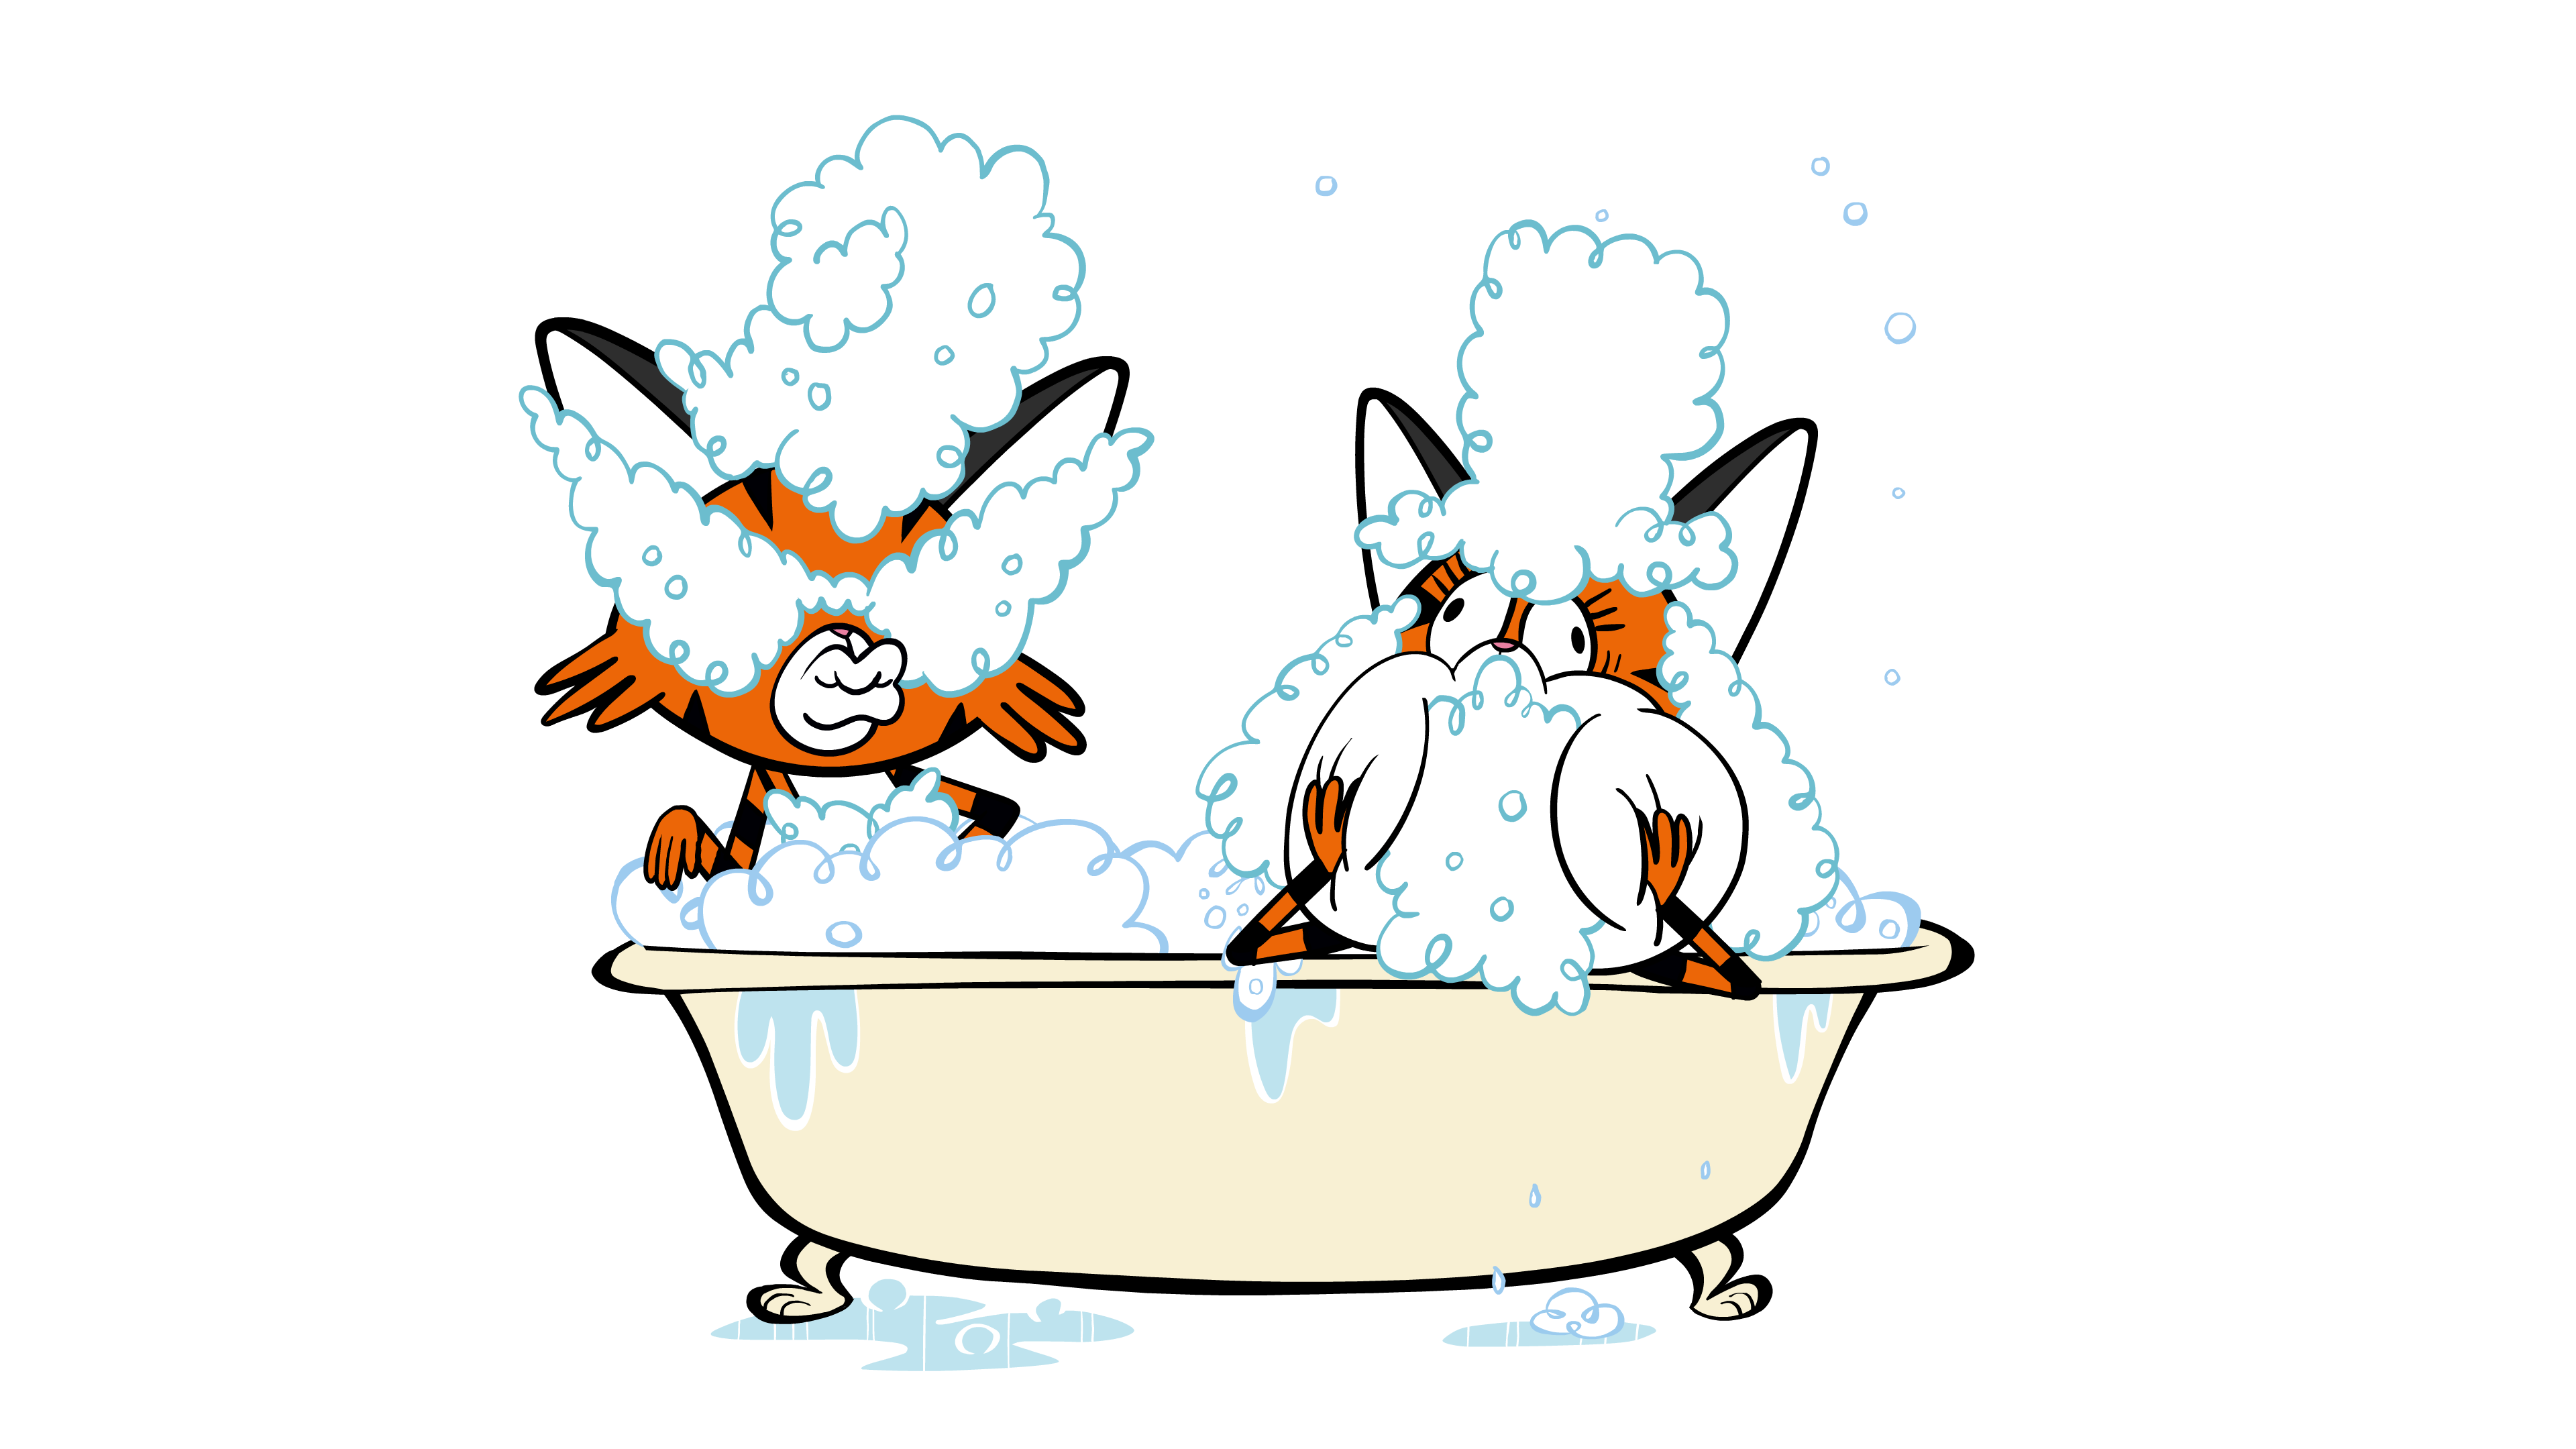 two cats in a bubble bath